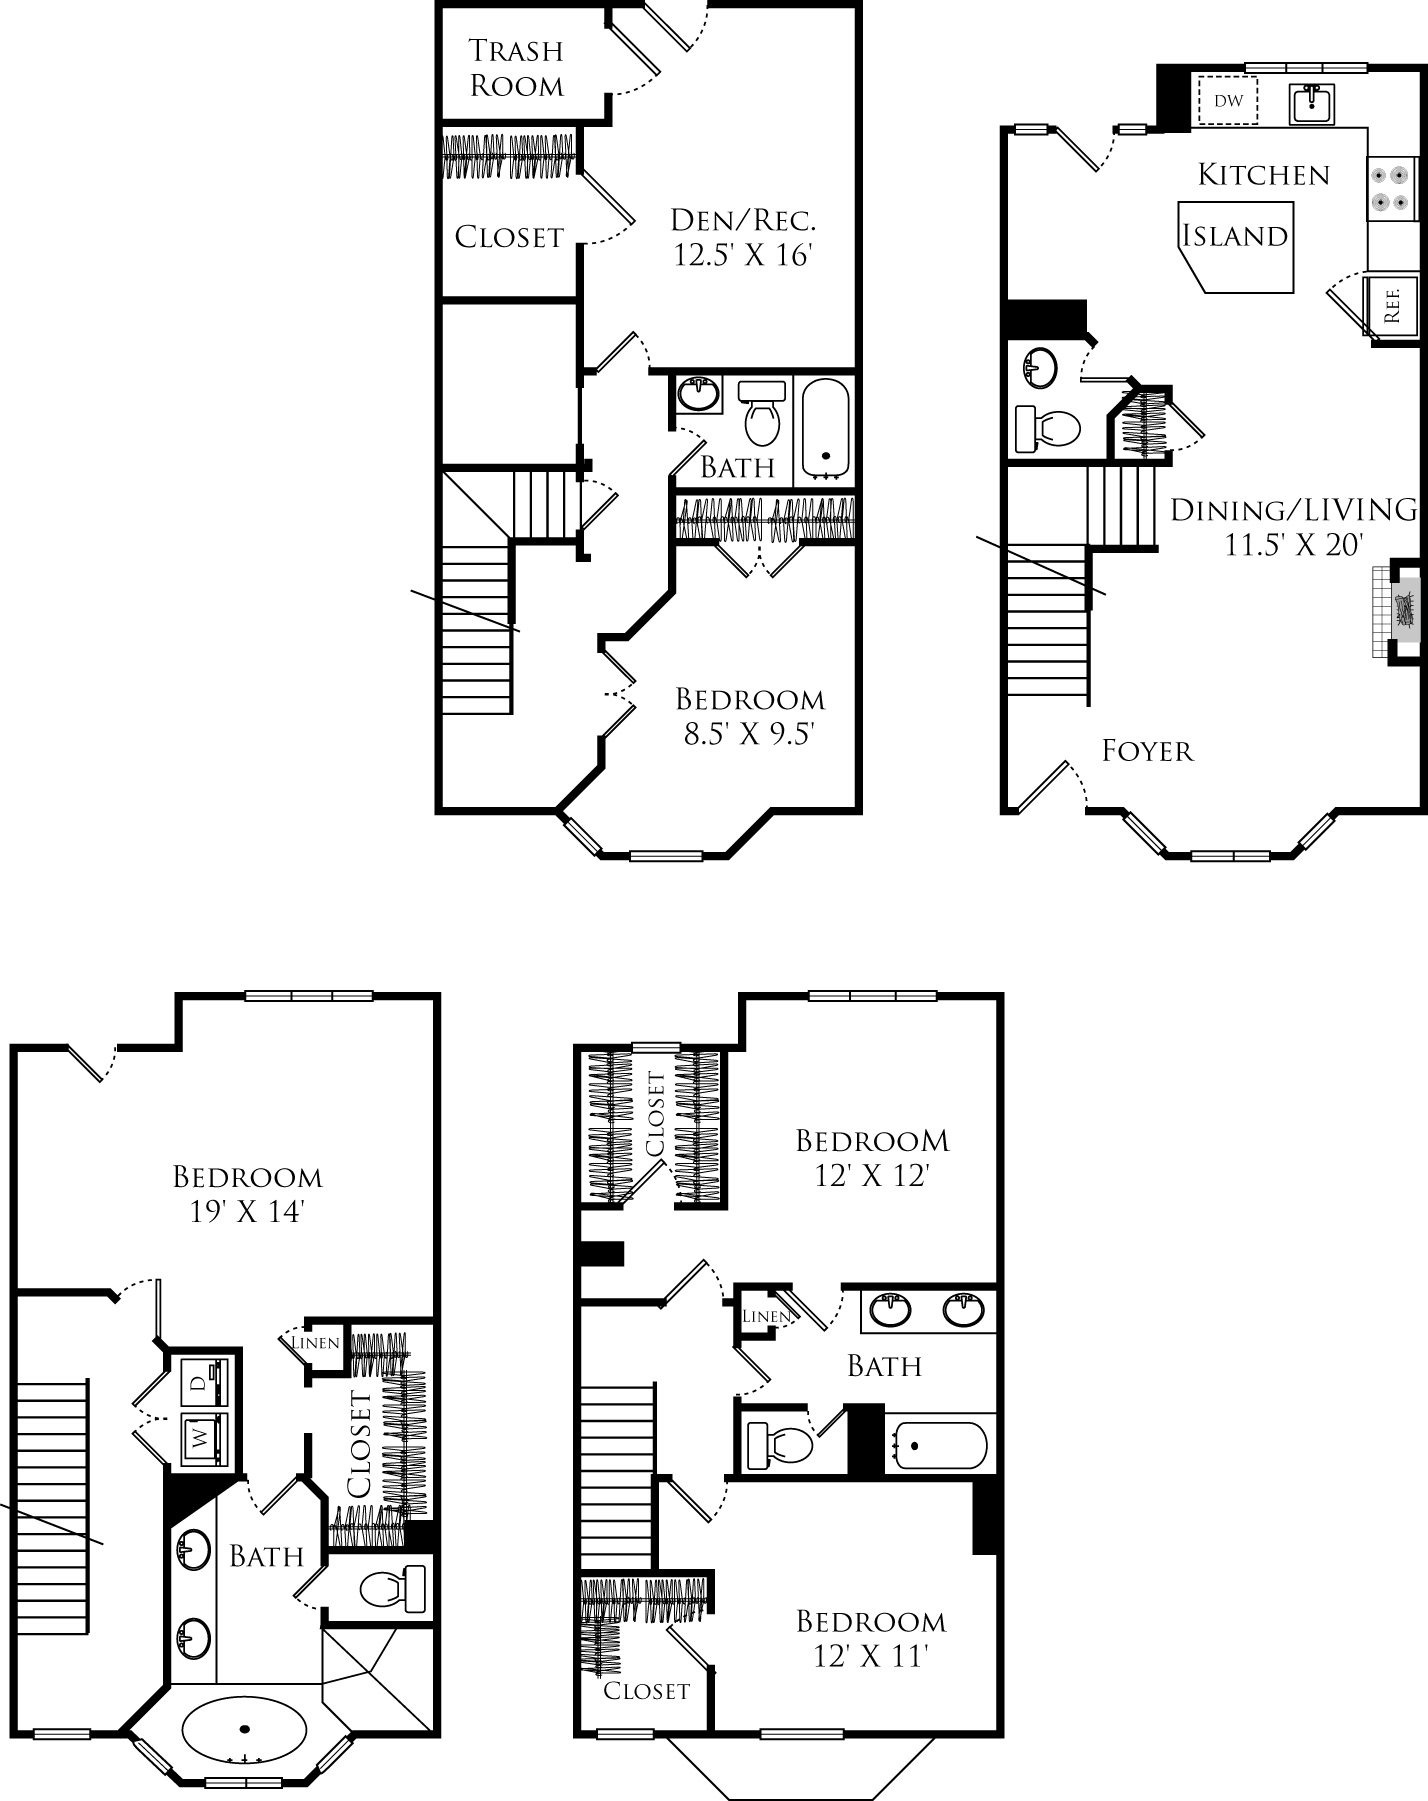 D4A townhouse floor plan is 4 beds, 3.5 baths and is 2832 square feet